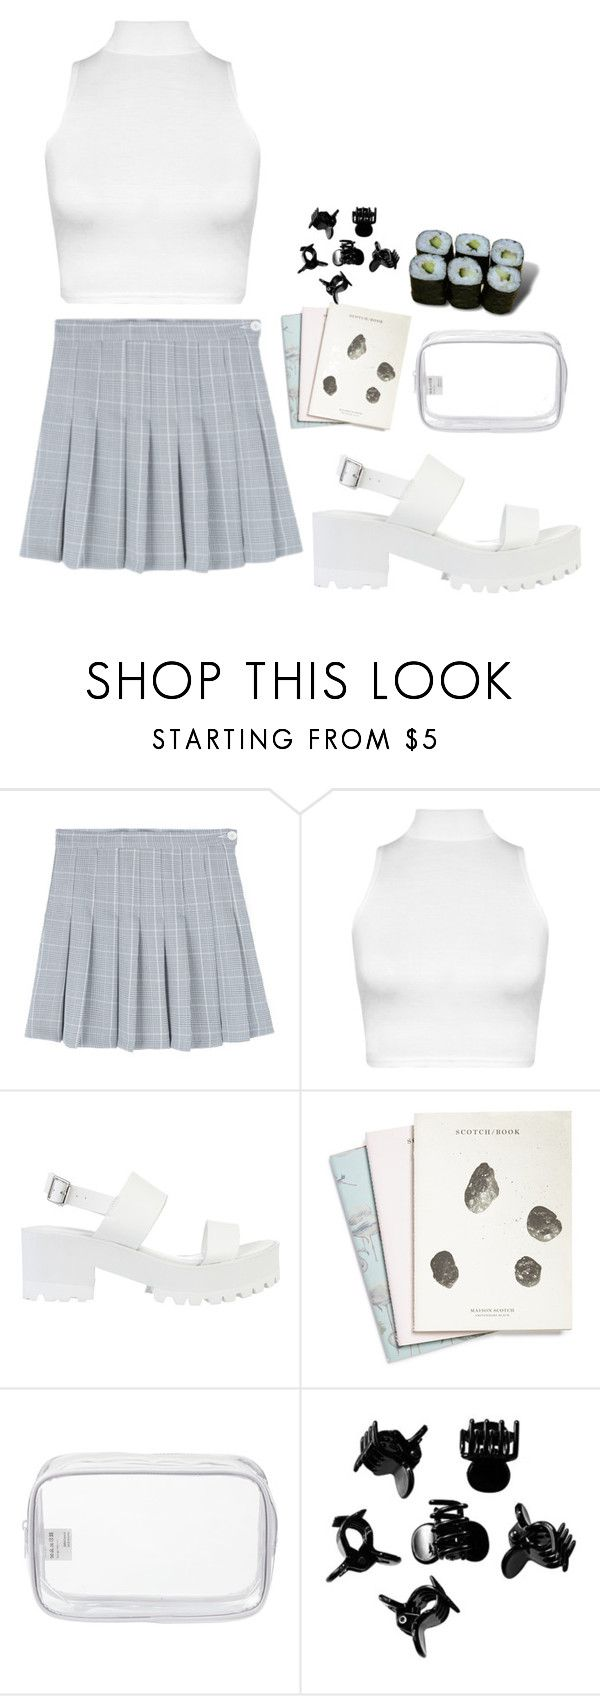 """you"" by loren-820 ❤ liked on Polyvore featuring WearAll, River Island, Jura, Maison Scotch, John Lewis and H&M"